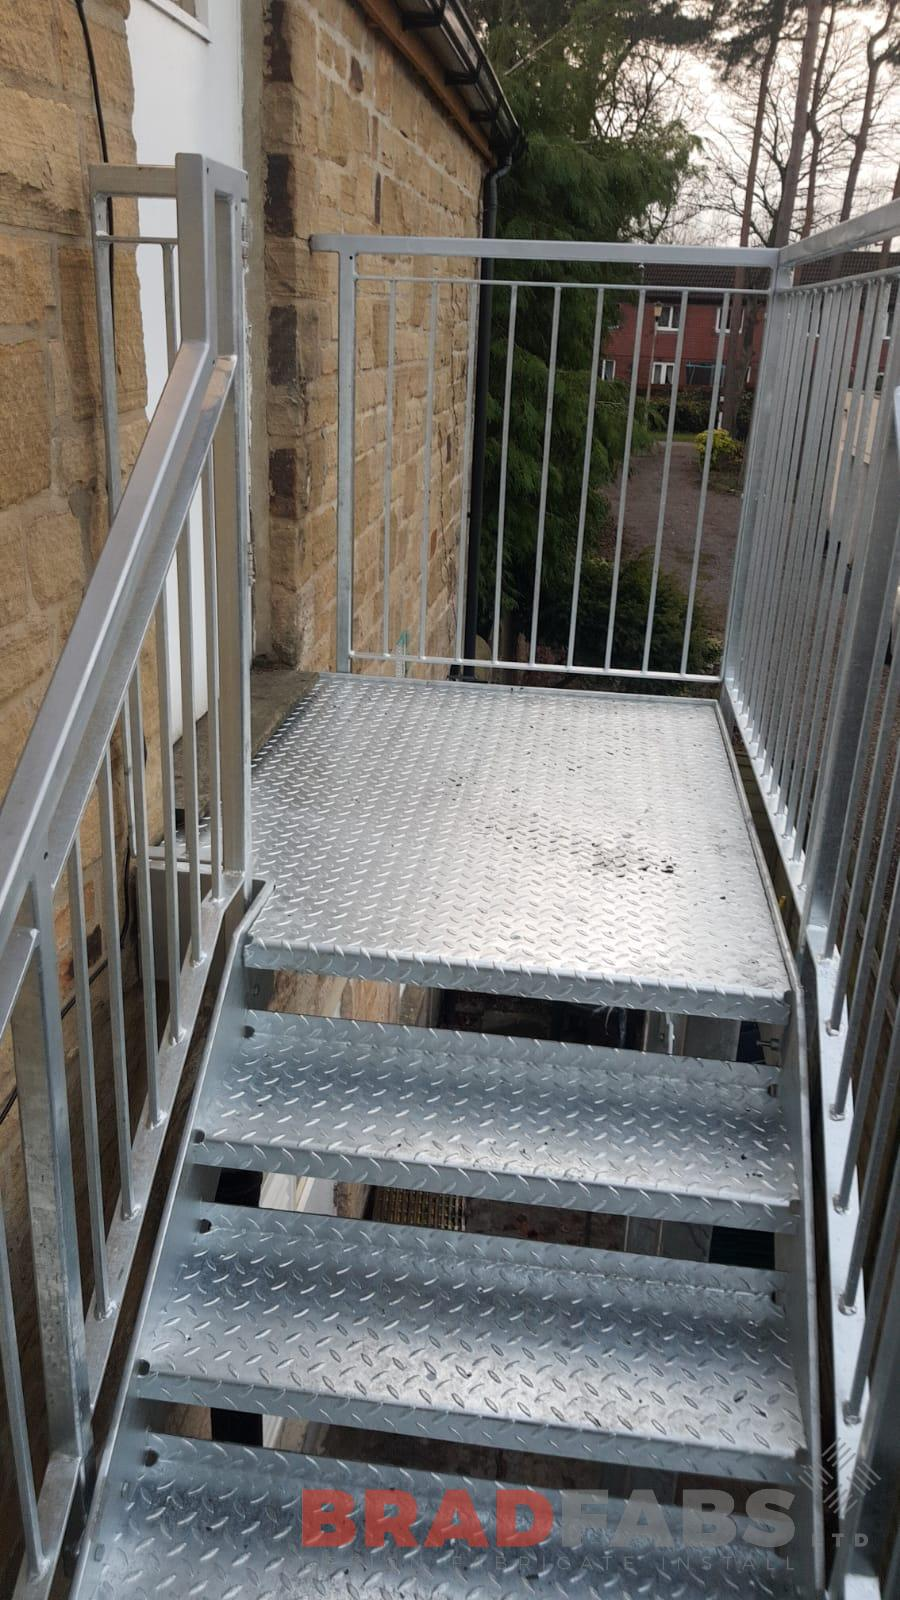 Mild steel, Galvanised, Powder Coated, External Fire Escape, Durbar Treads, Staircase, Landing, Vertical Bar Balustrade